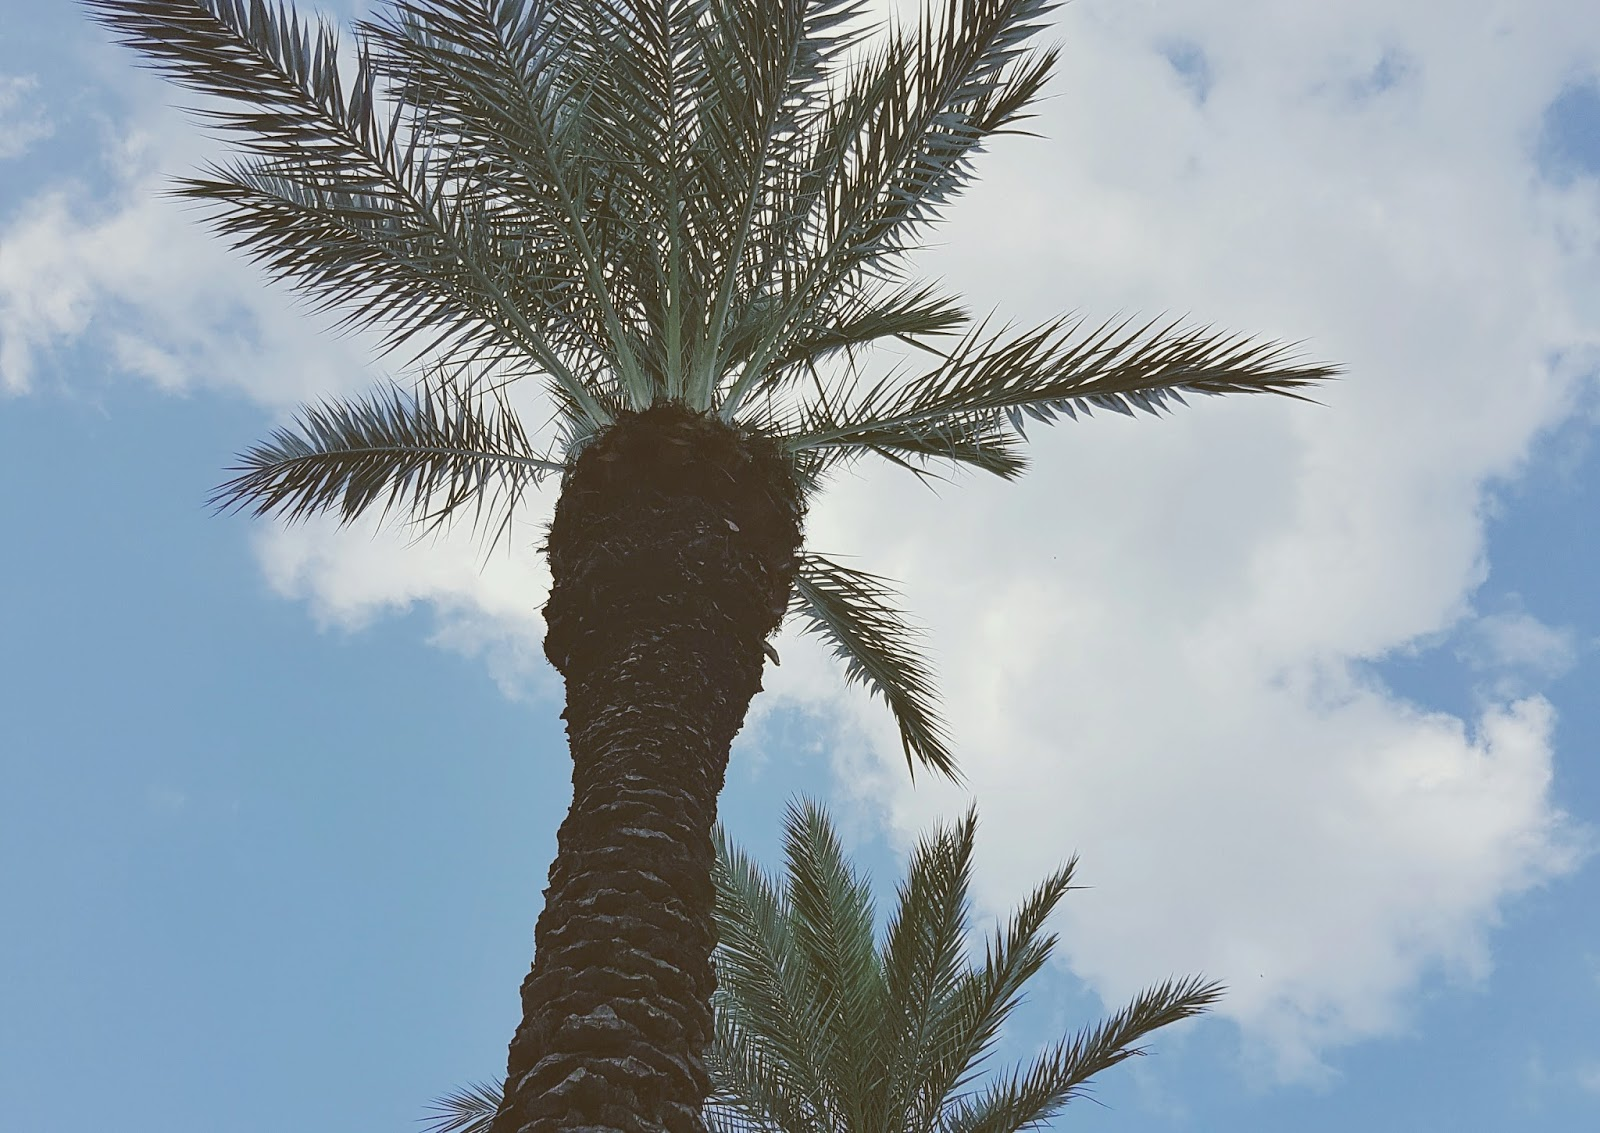 New Orleans, travel, summer, hot, palm trees, vacation